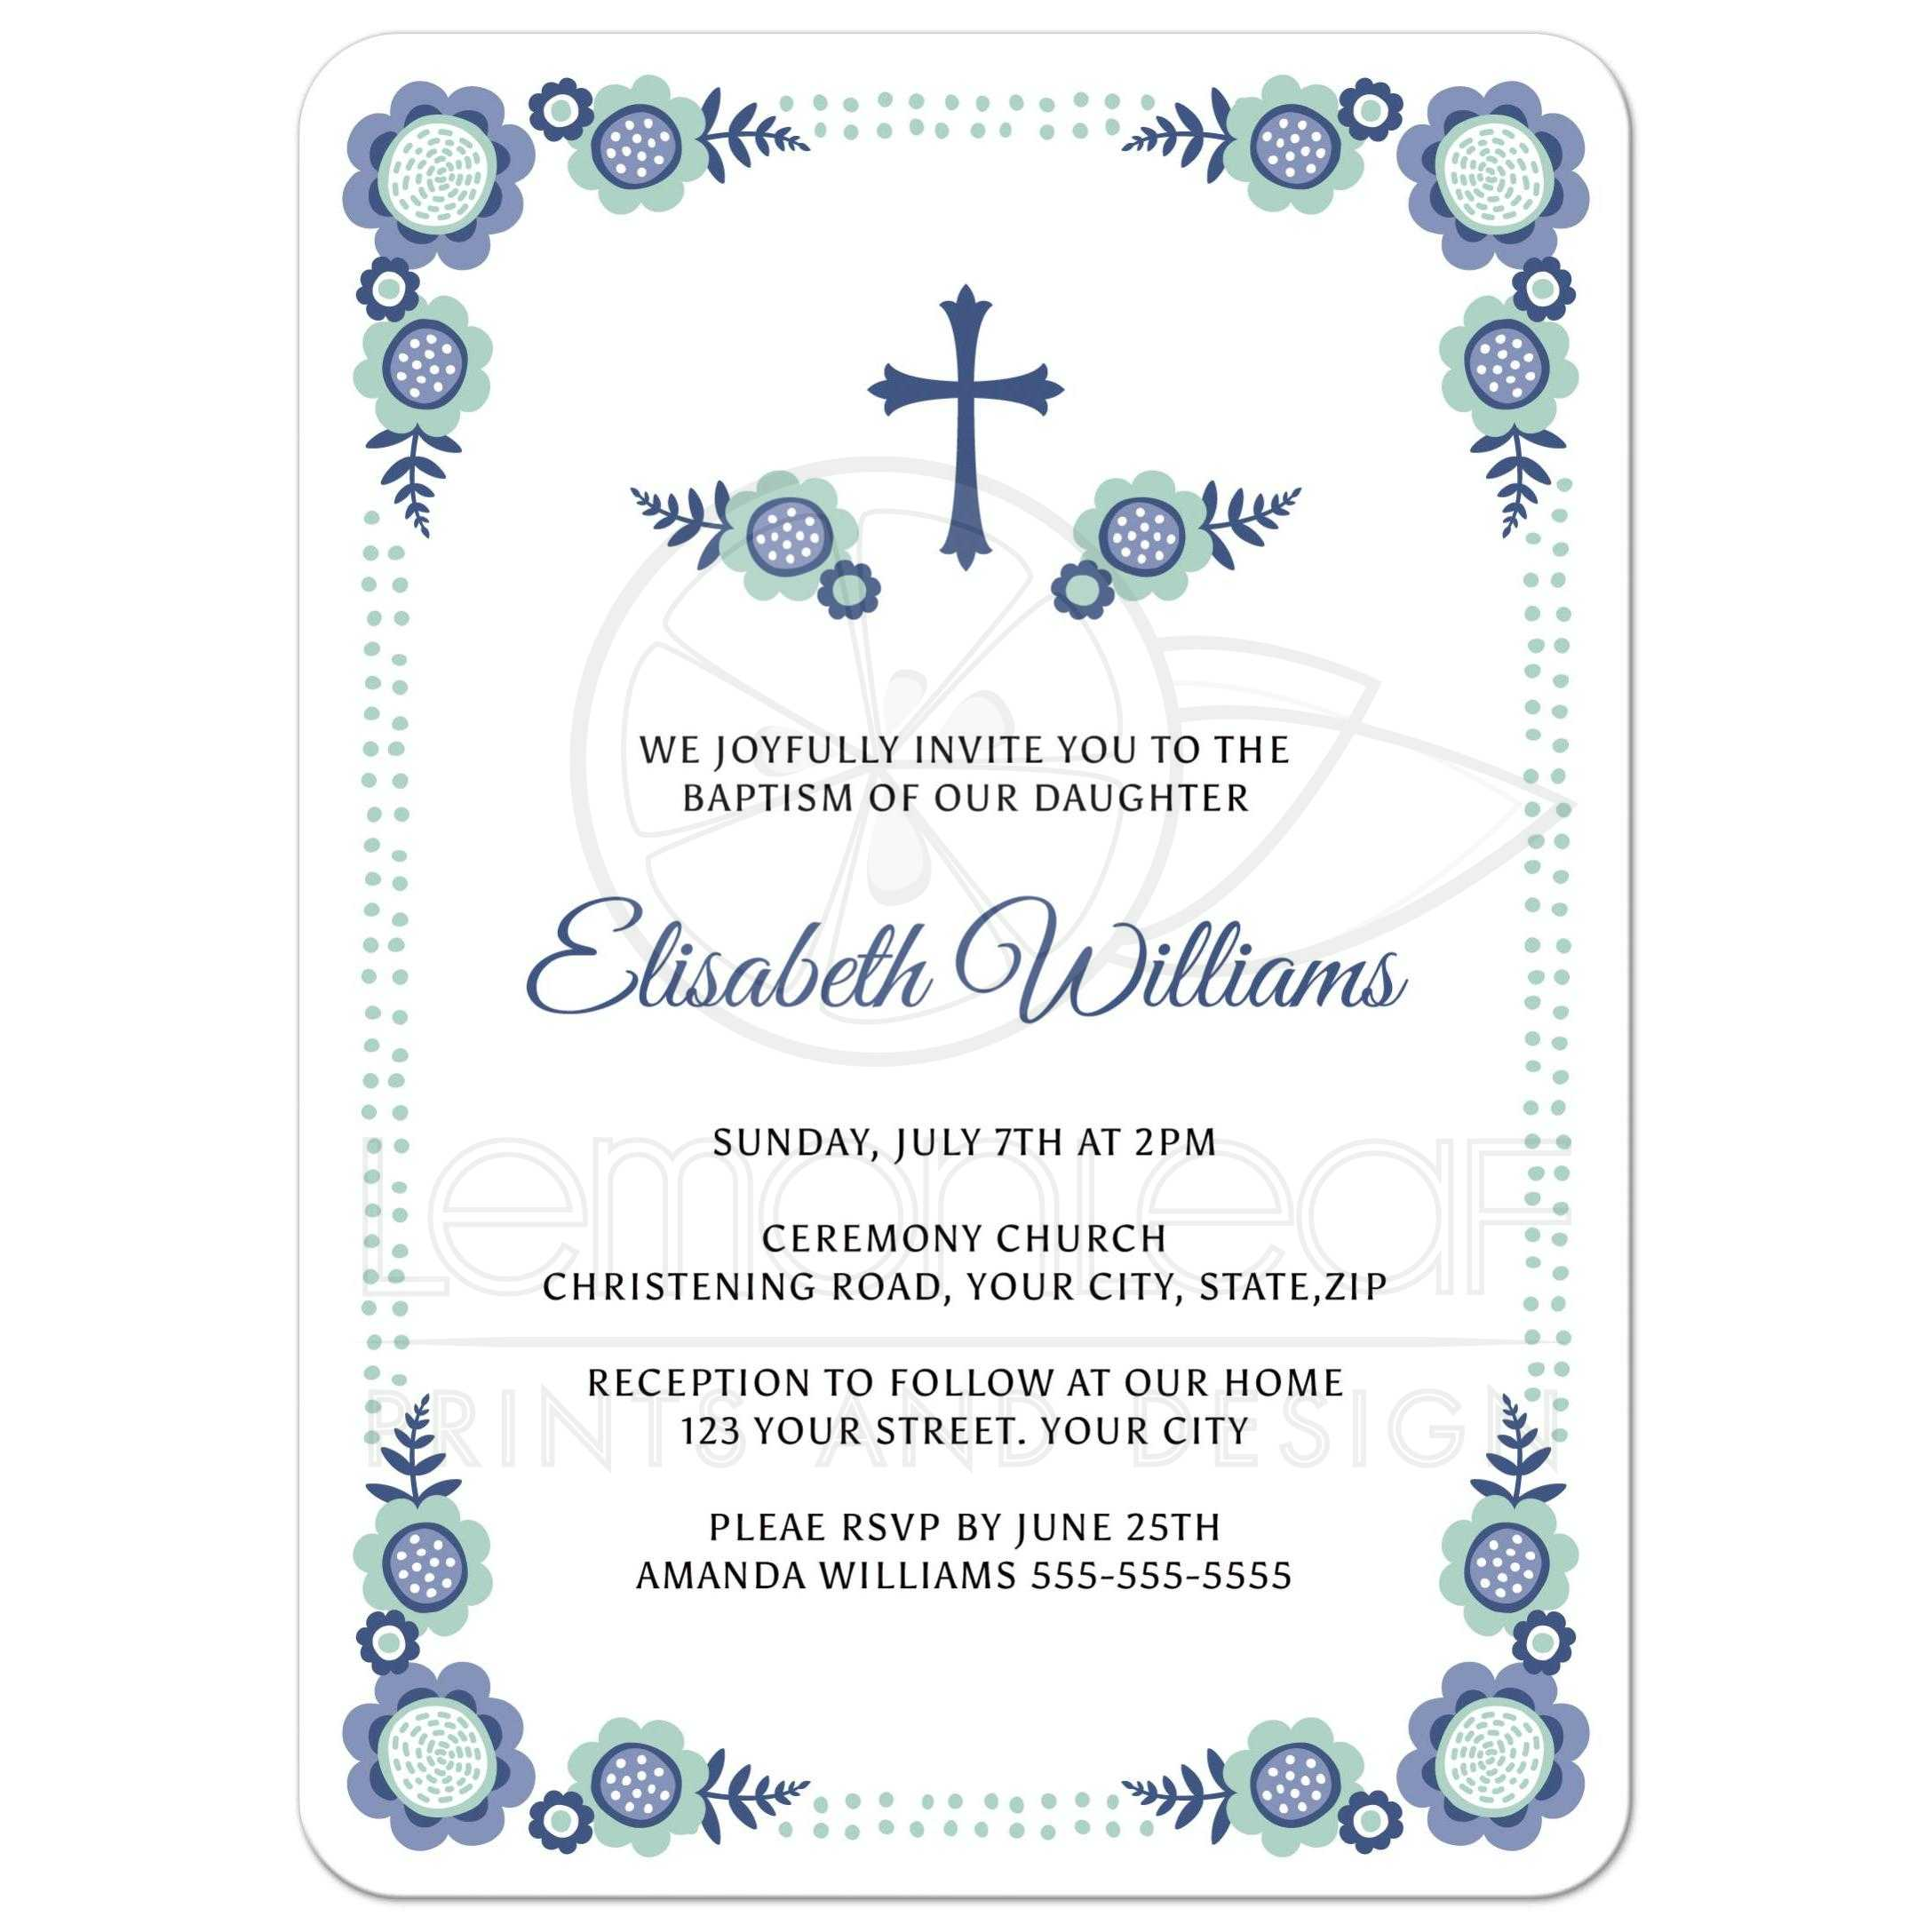 Burlap And Lace Invitations with beautiful invitation design